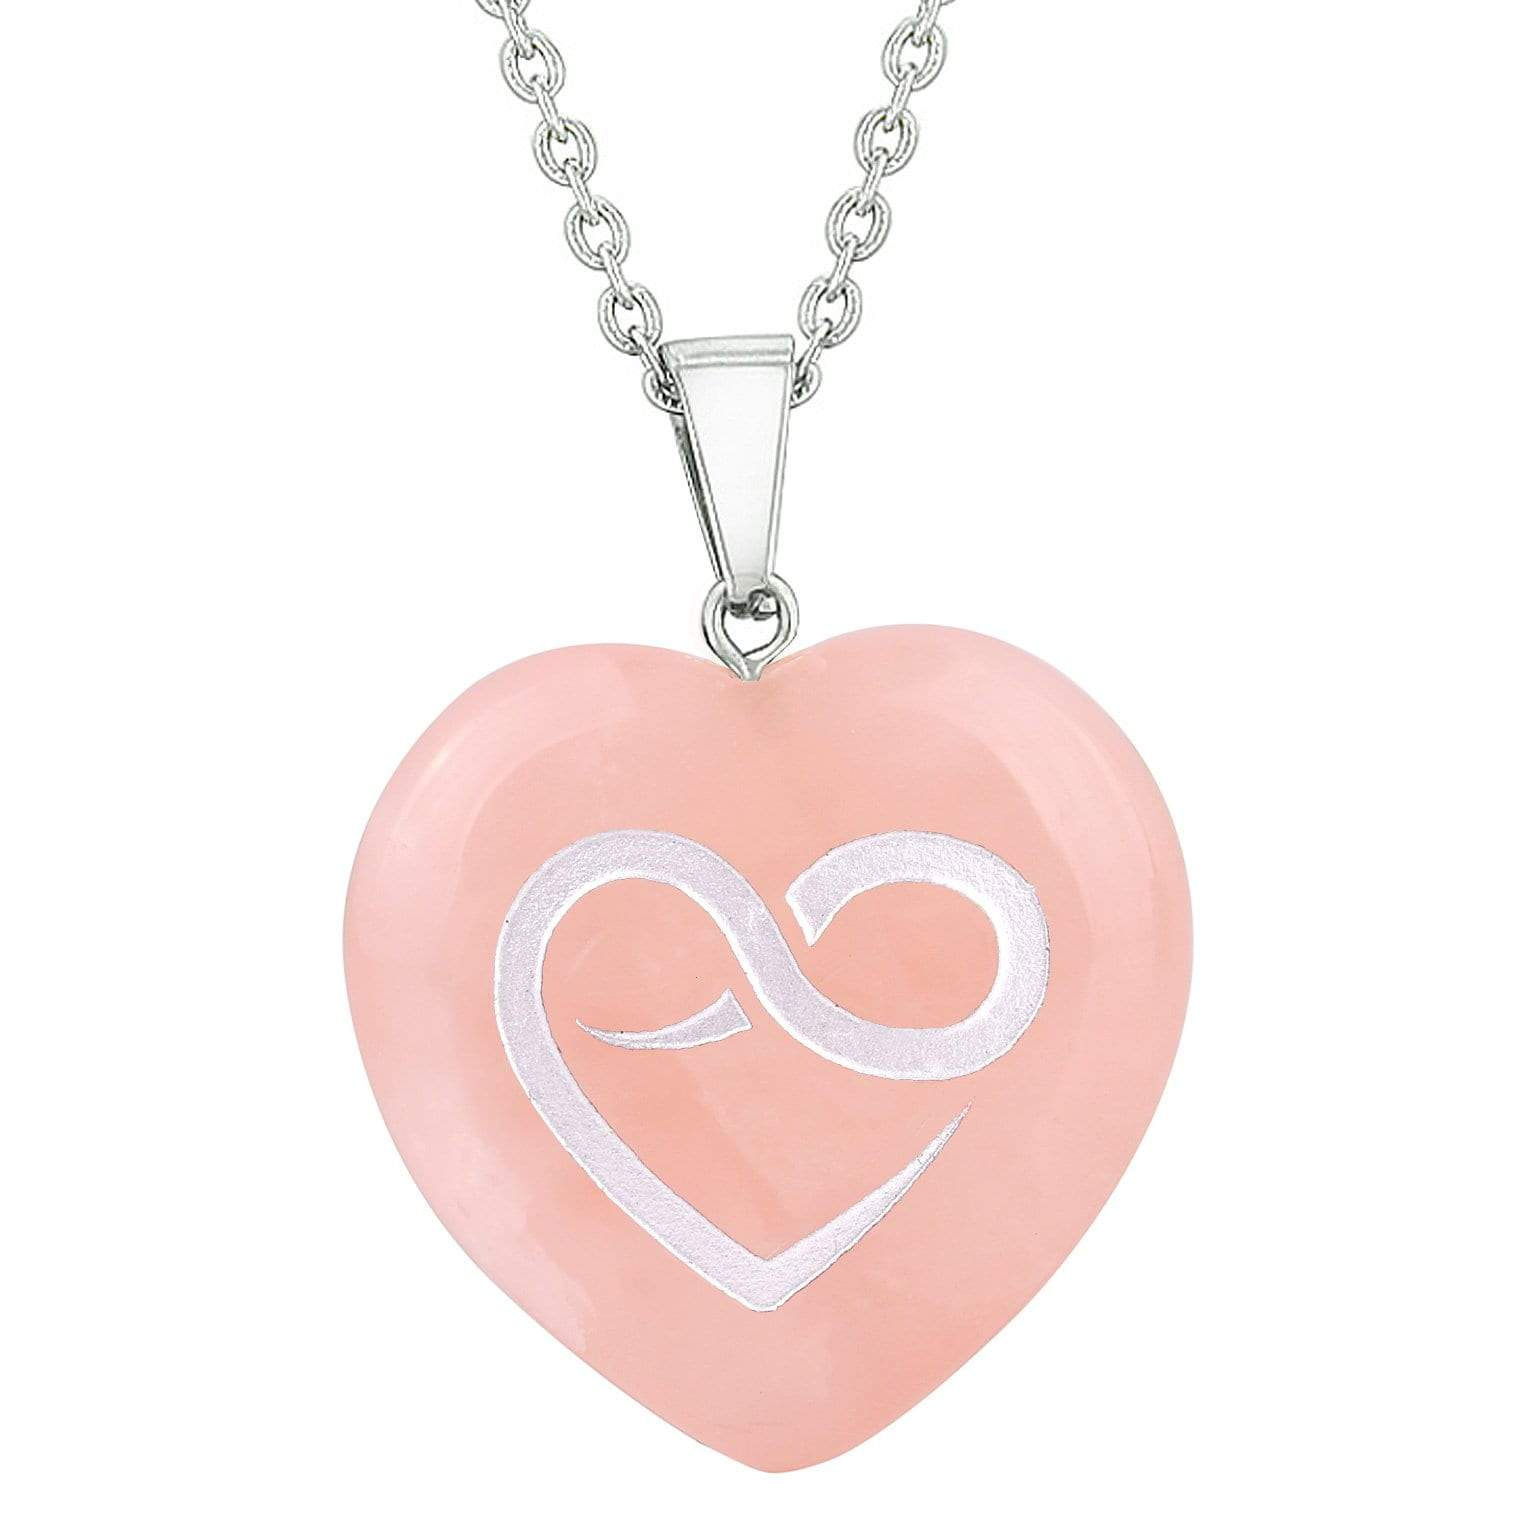 Amulet Infinity Eternity Heart Love Power Protect Energy Rose Quartz Puffy Heart Pendant Necklace